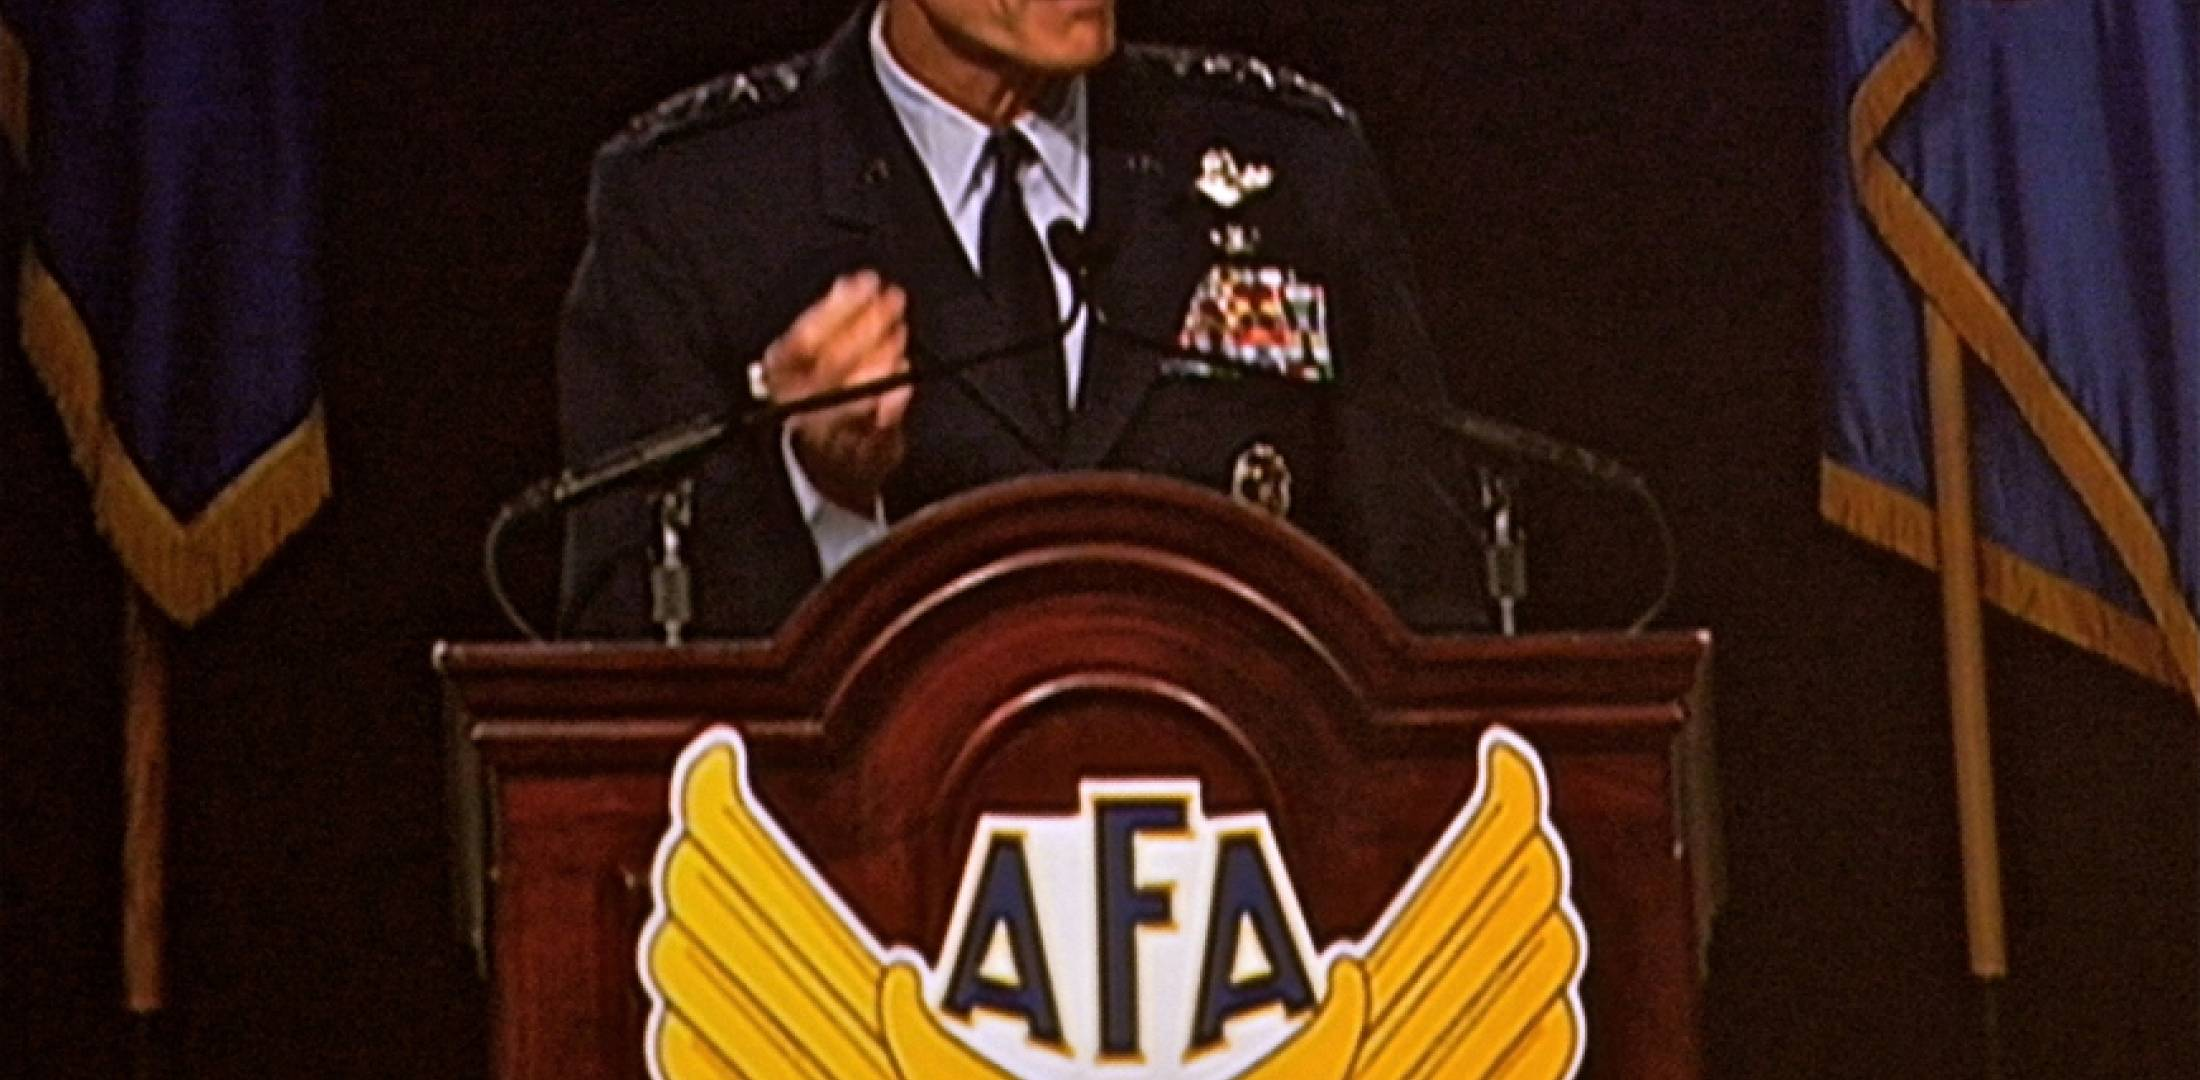 U.S. Air Force chief of staff Gen. Norton Schwartz delivers an address Septem